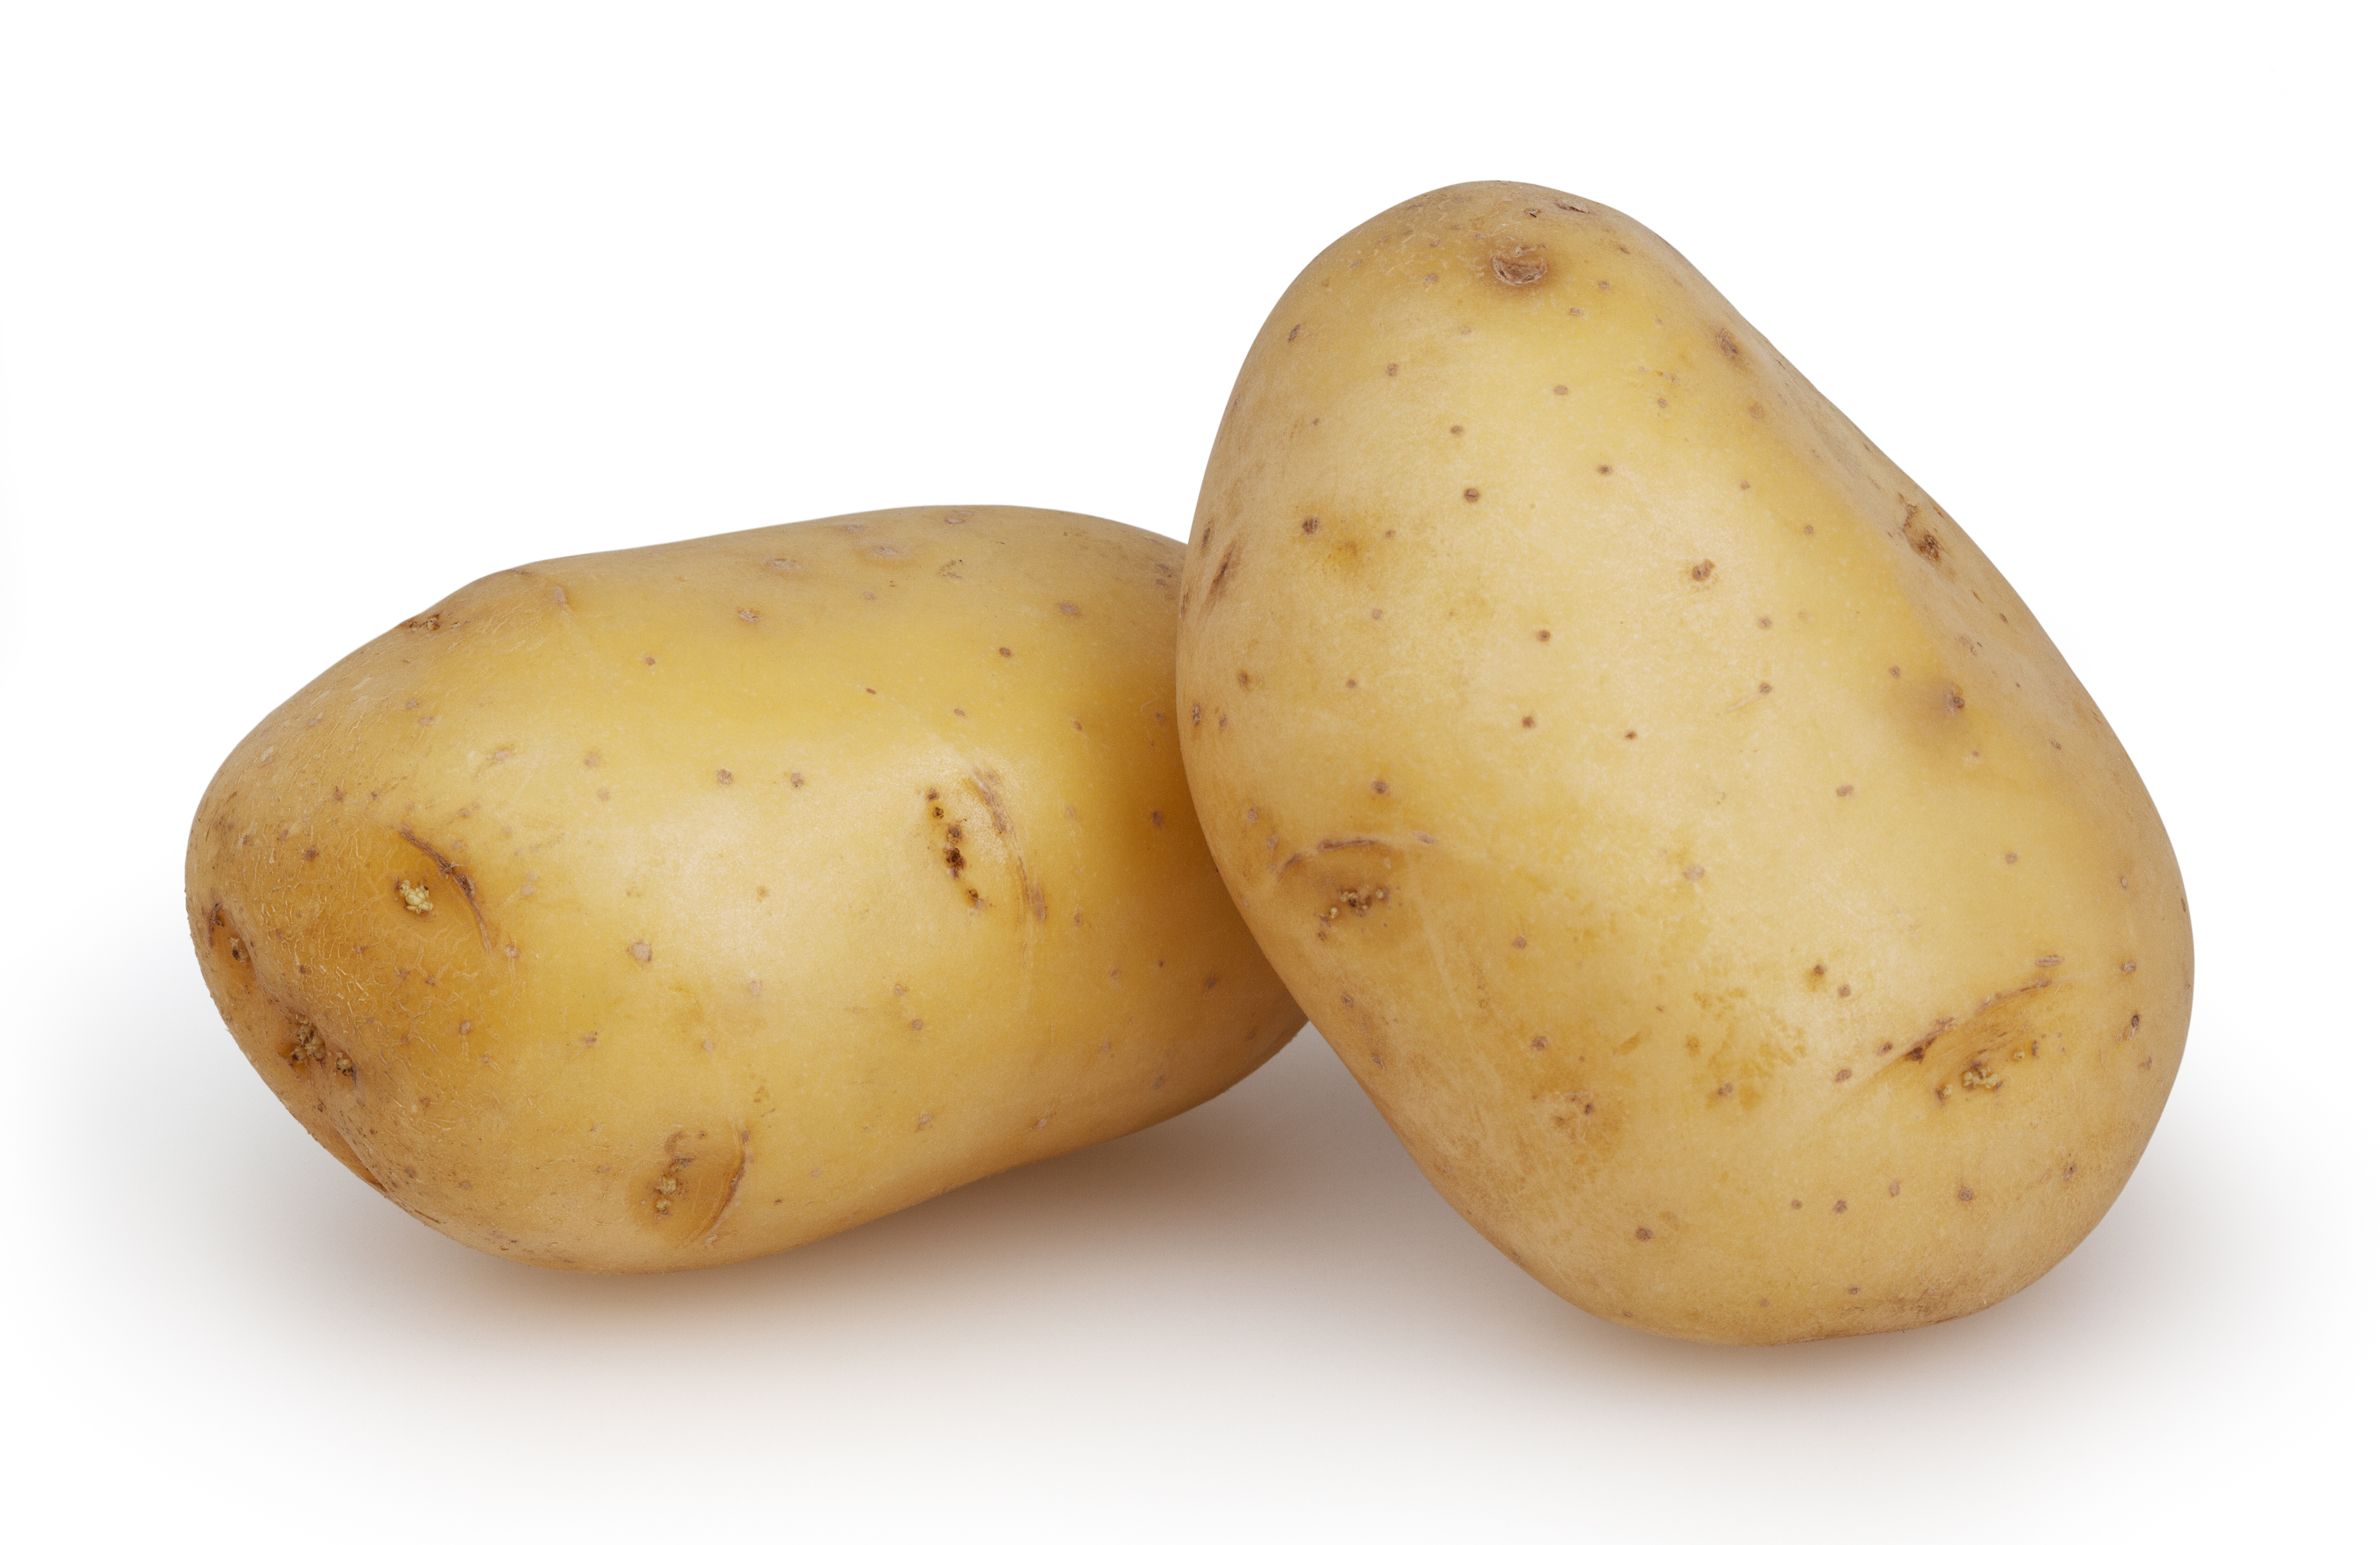 The us potato board selects mediavalet to share videos photos and other marketing materials - What to do with potatoes ...